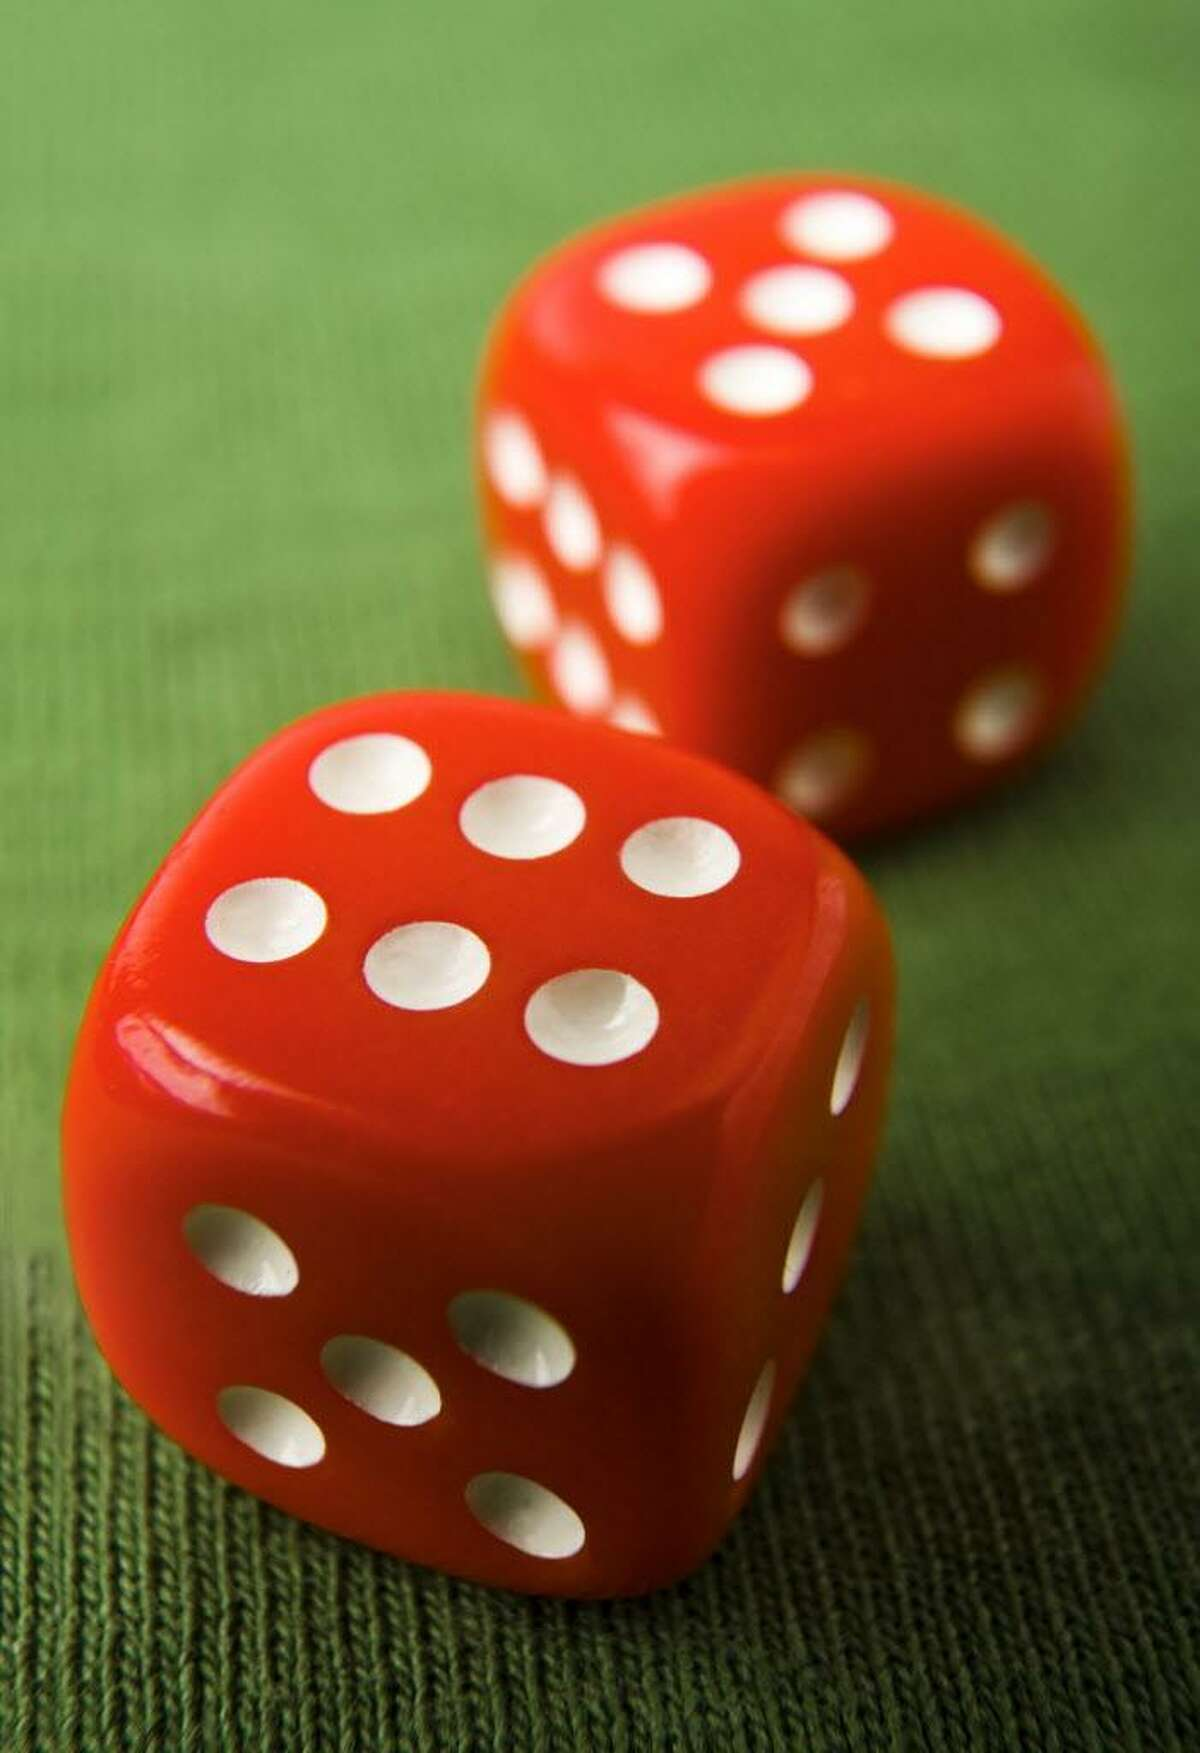 The number 11: on a pair of dice, in the spotlight, on a roulette wheel. Credit: Fotolia